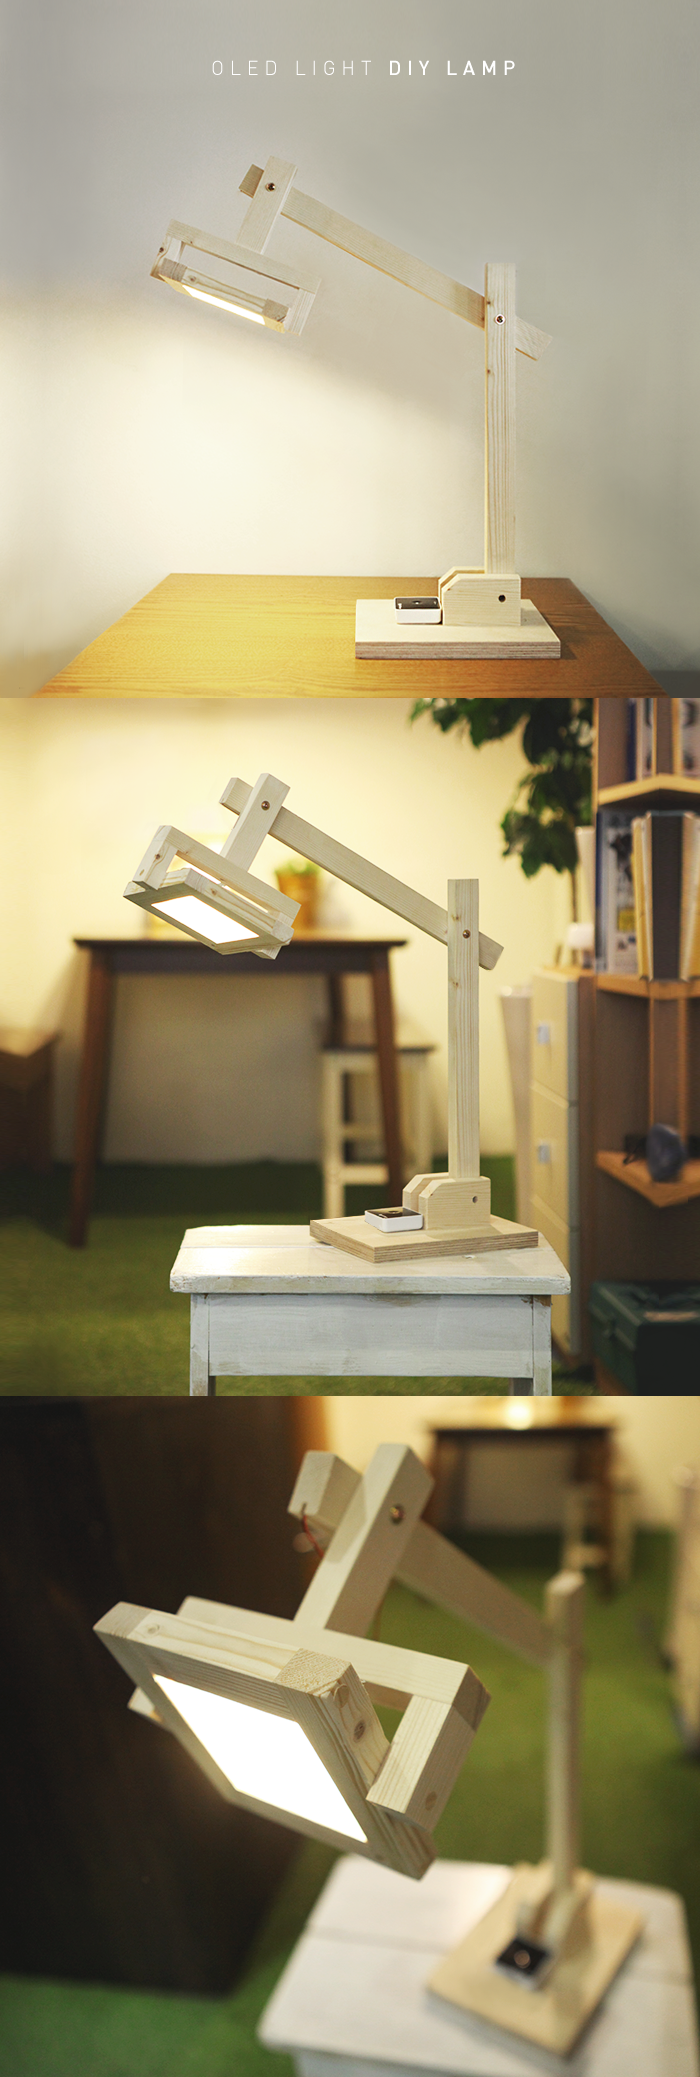 A wooden task lamp made with oled light 100x100mm diy kit to order a wooden task lamp made with oled light 100x100mm diy kit to order an oled solutioingenieria Gallery